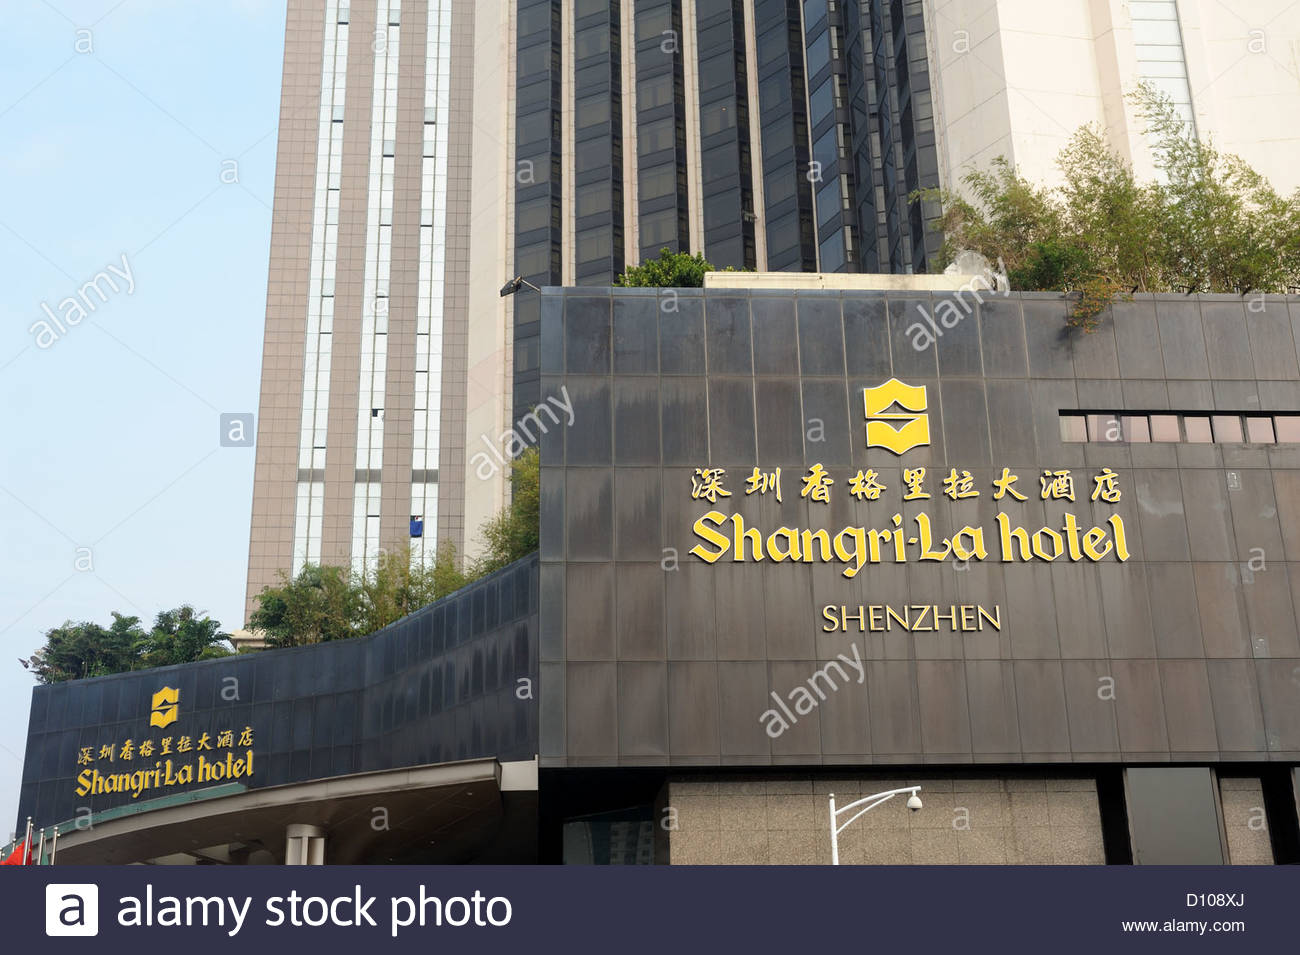 Image result for shenzhen hotel